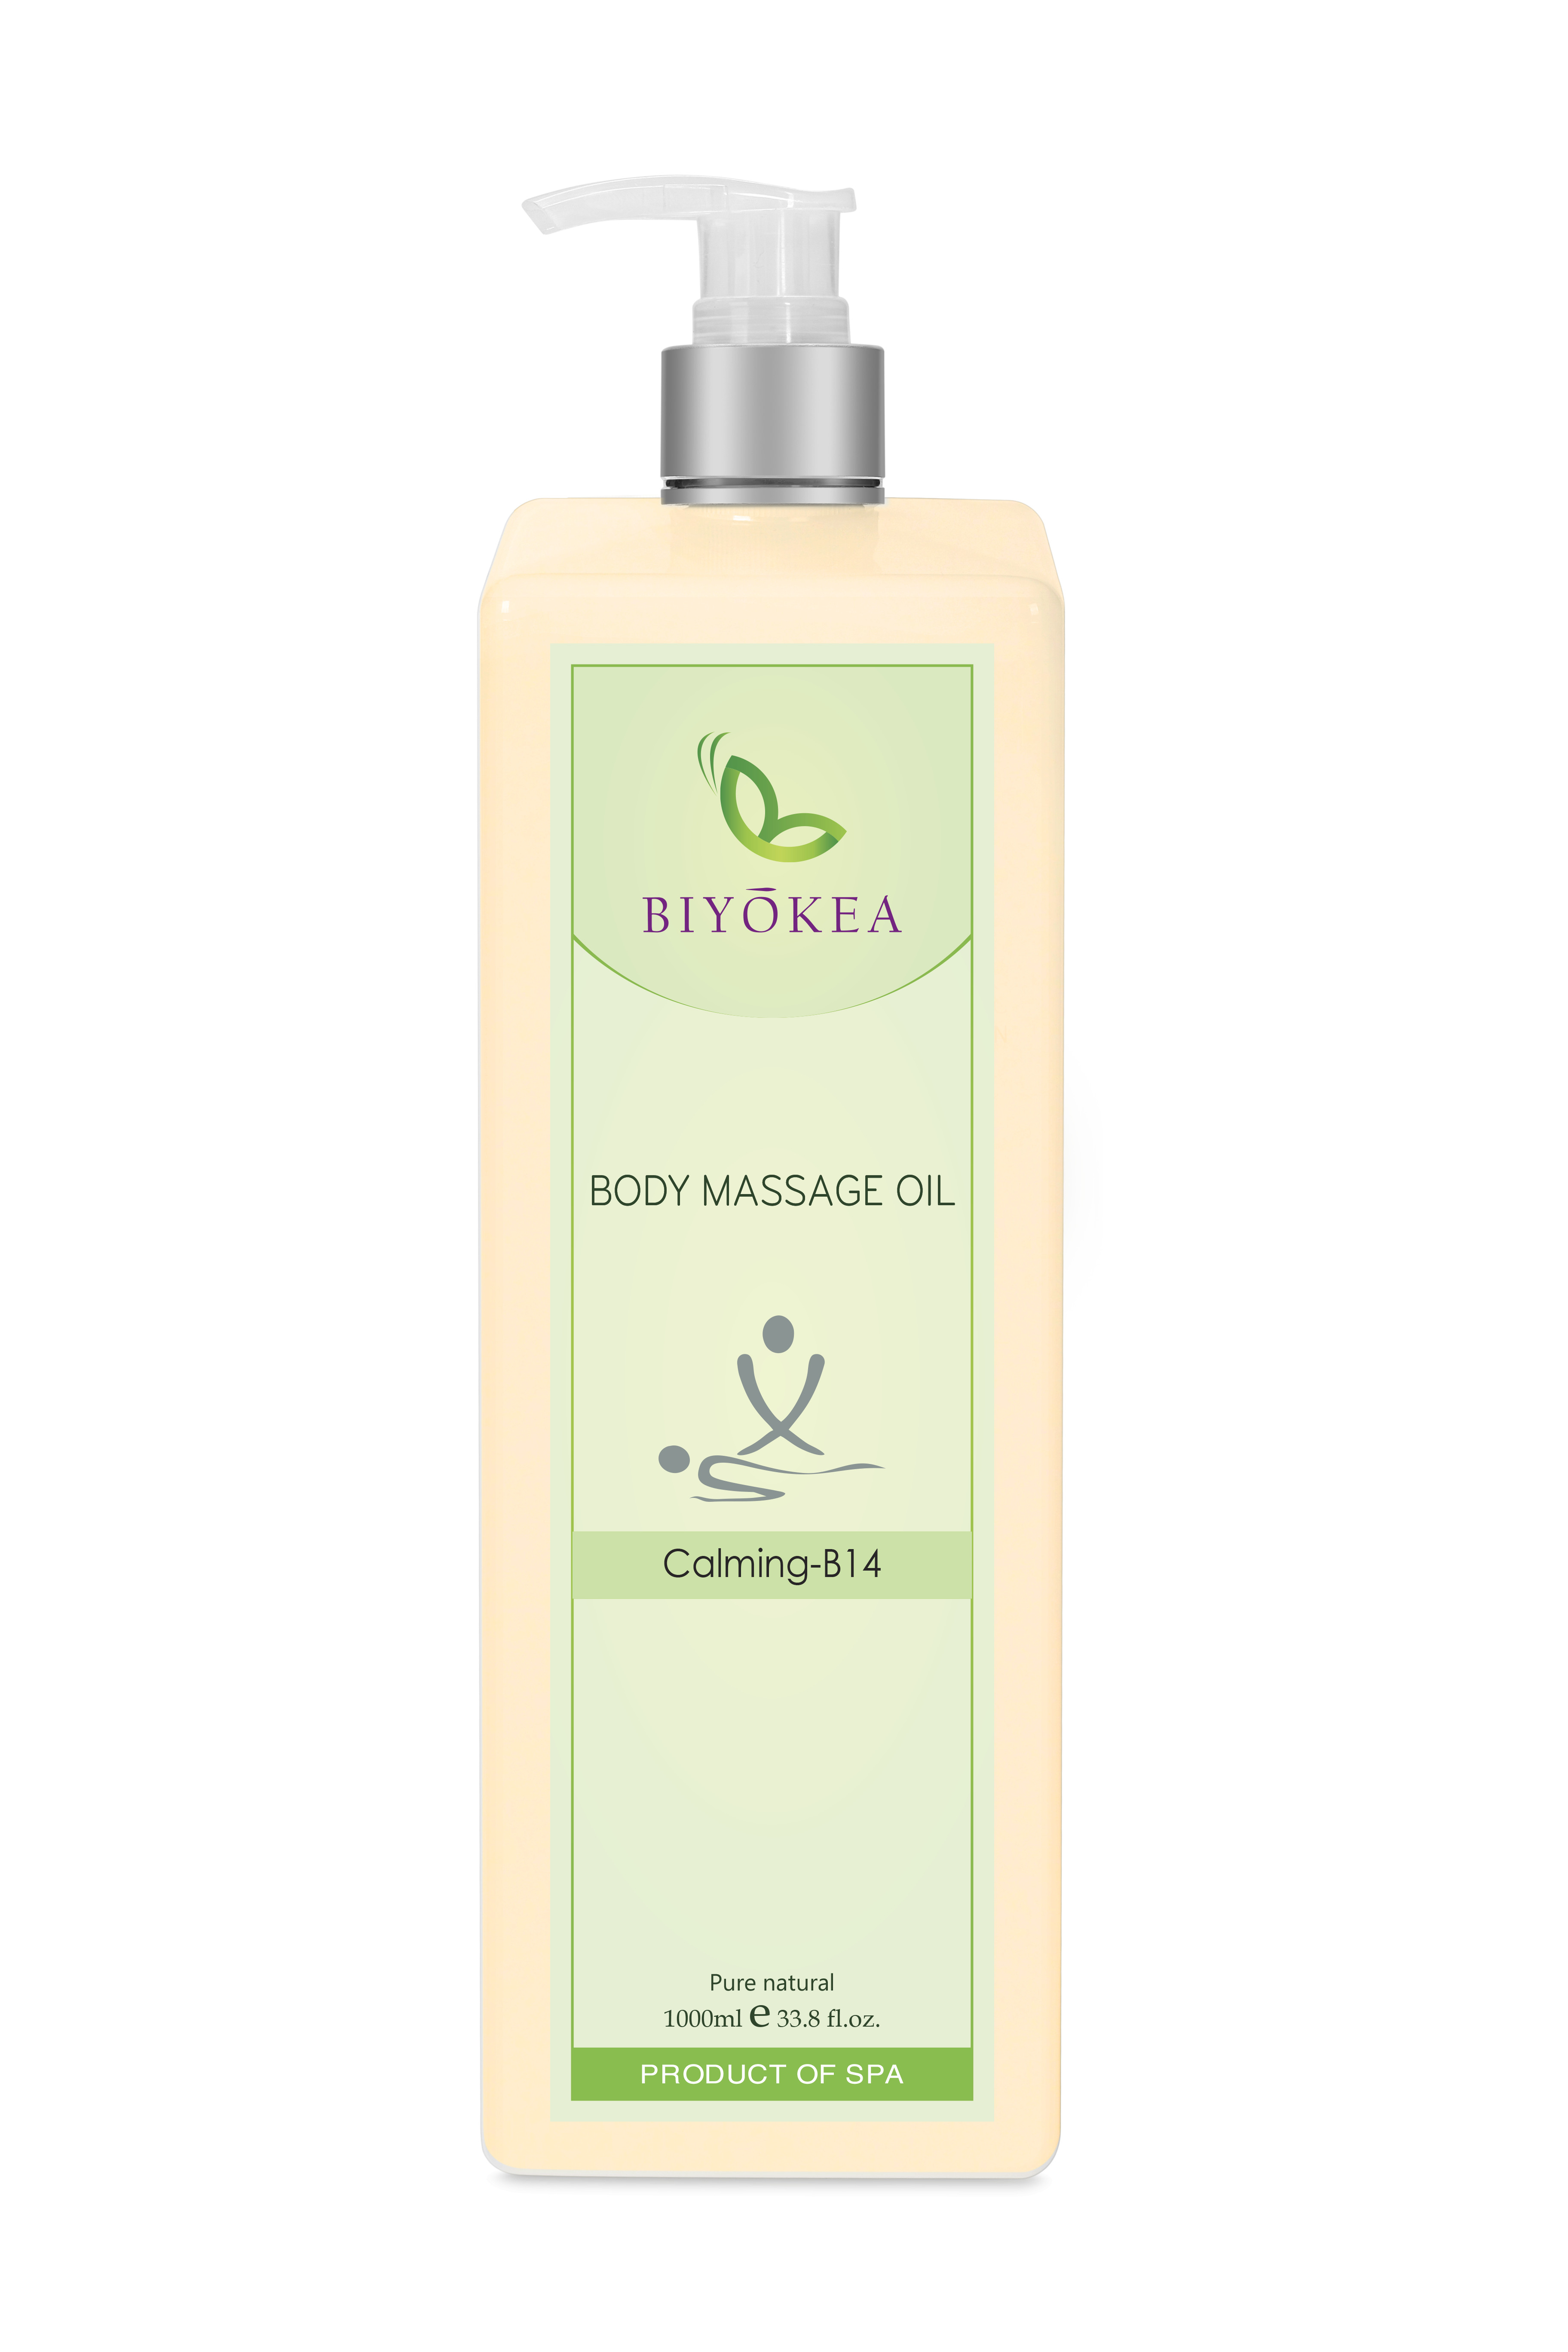 Dầu Massage Body Biyokea - Calming B14 (êm dịu) - 1000ml